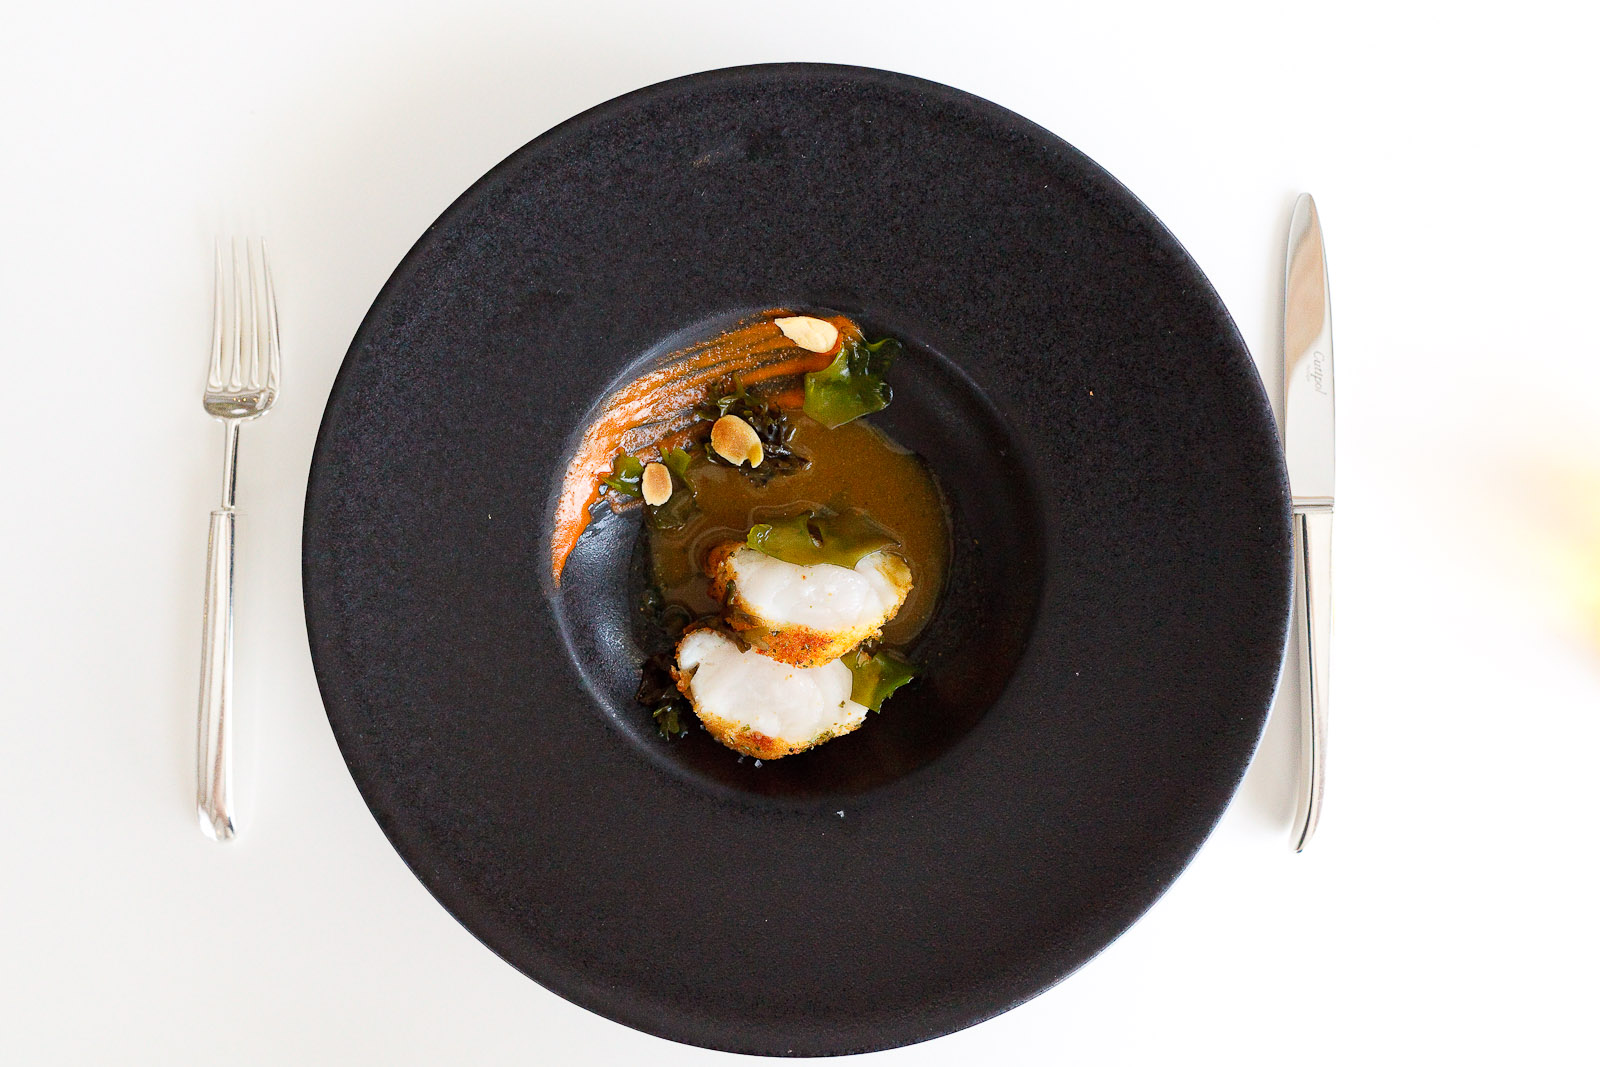 15th Course: Breaded monkfish in seaweed sauce, almonds.